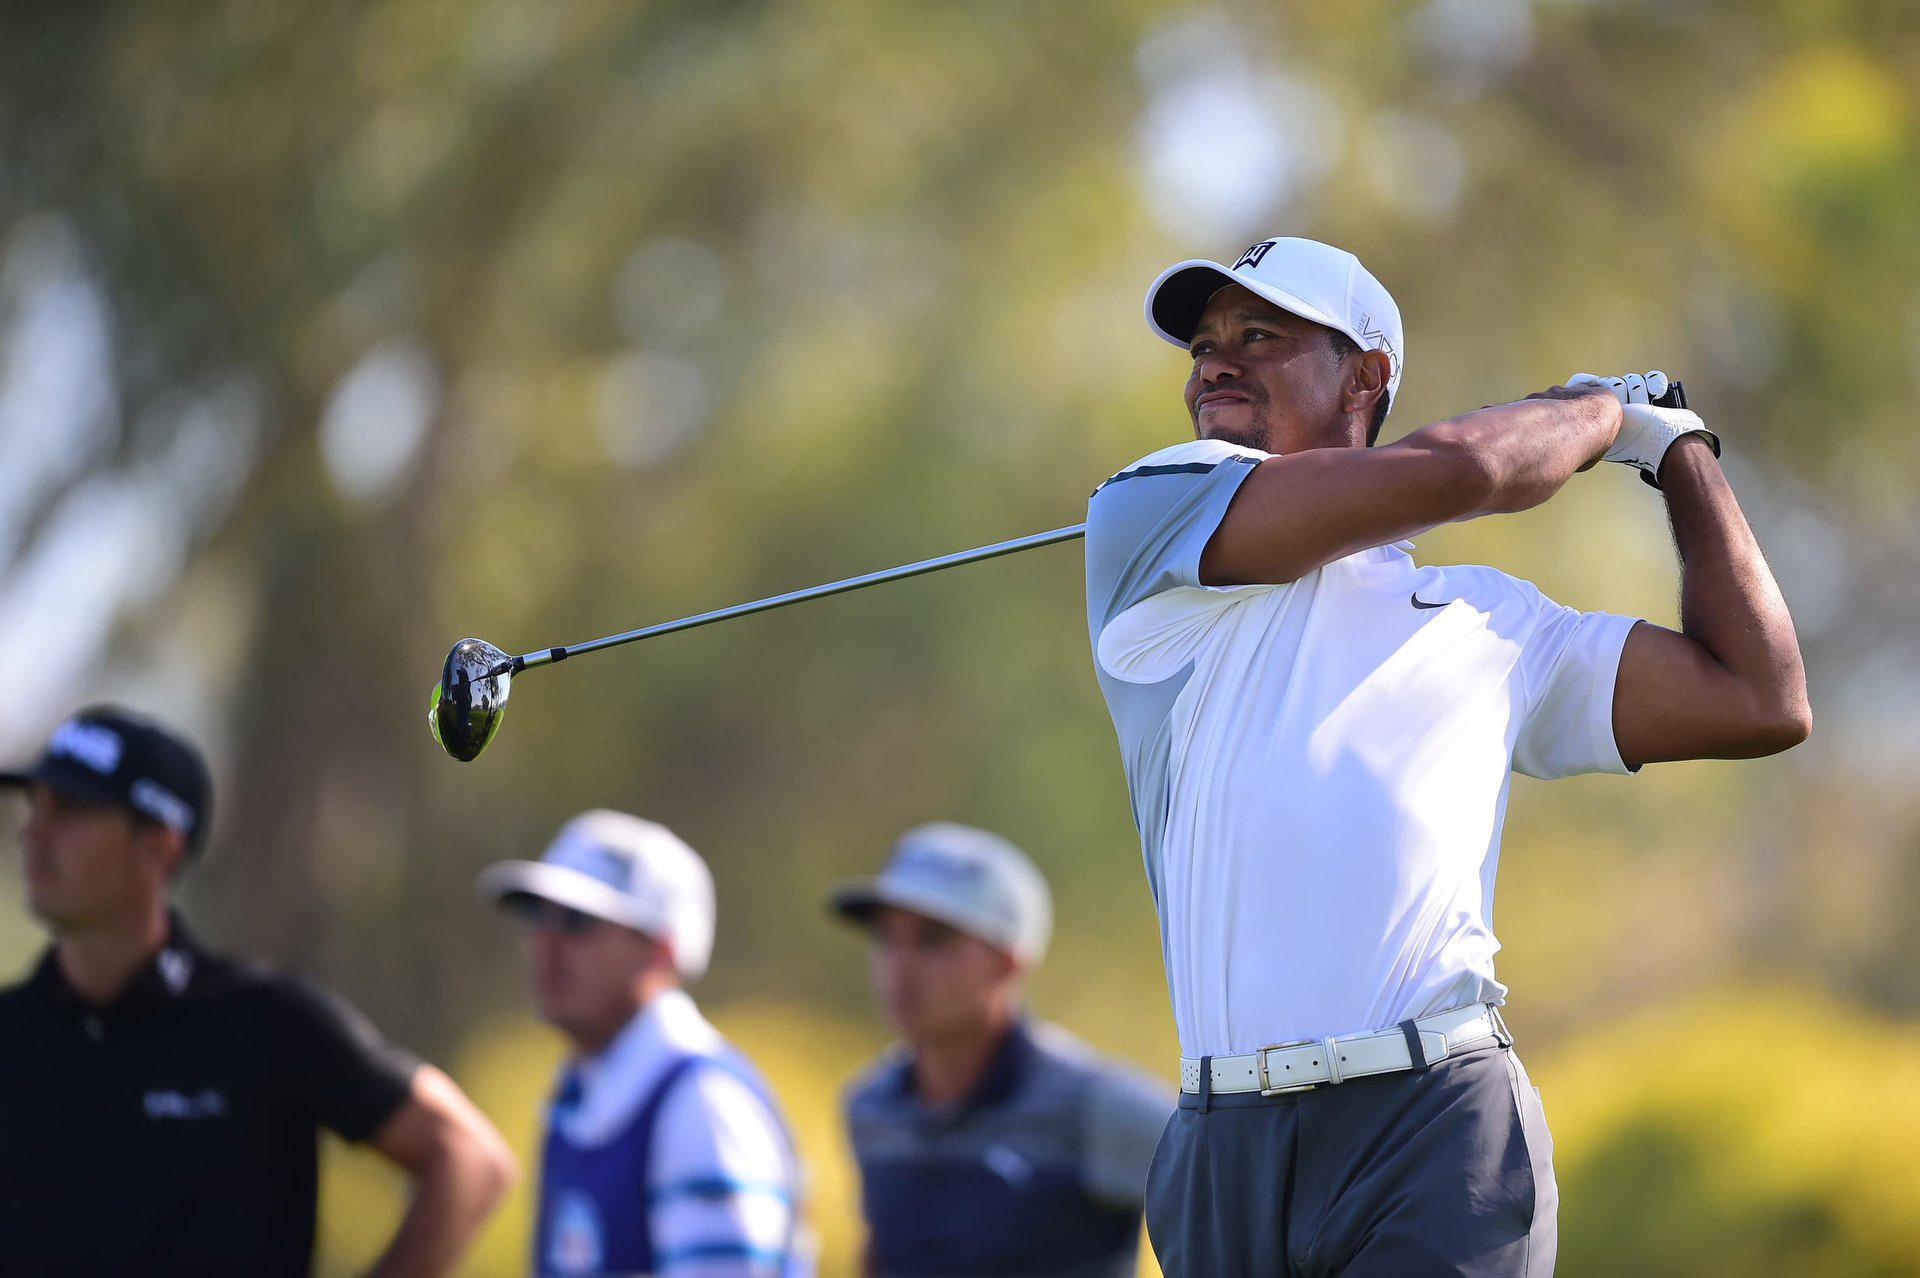 Tiger Woods in the first round the 2015 Farmers Insurance Open at Torrey Pines. Woods withdrew after playing just 12 holes.